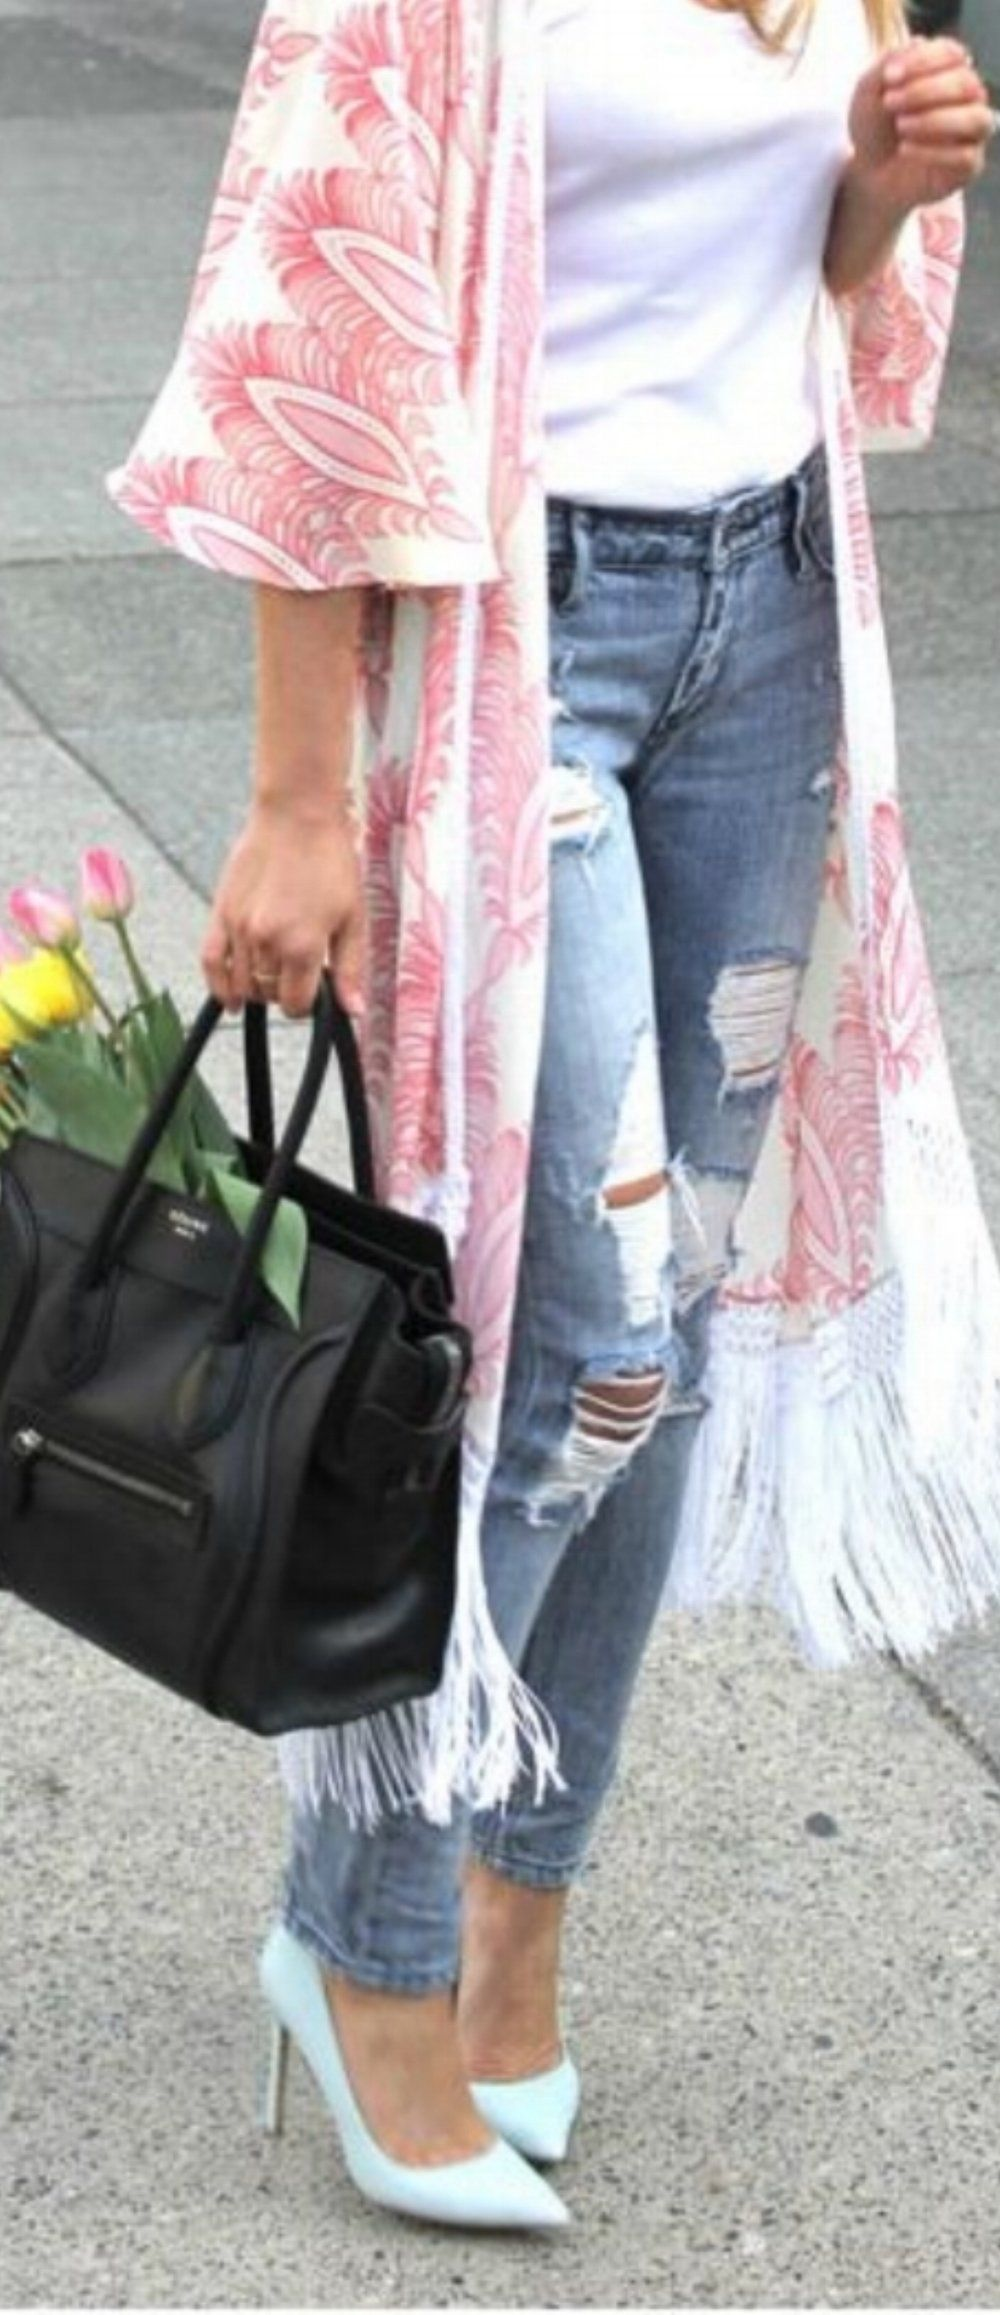 8 Hot Spring Outfits On The Street @styleestate  Fashion